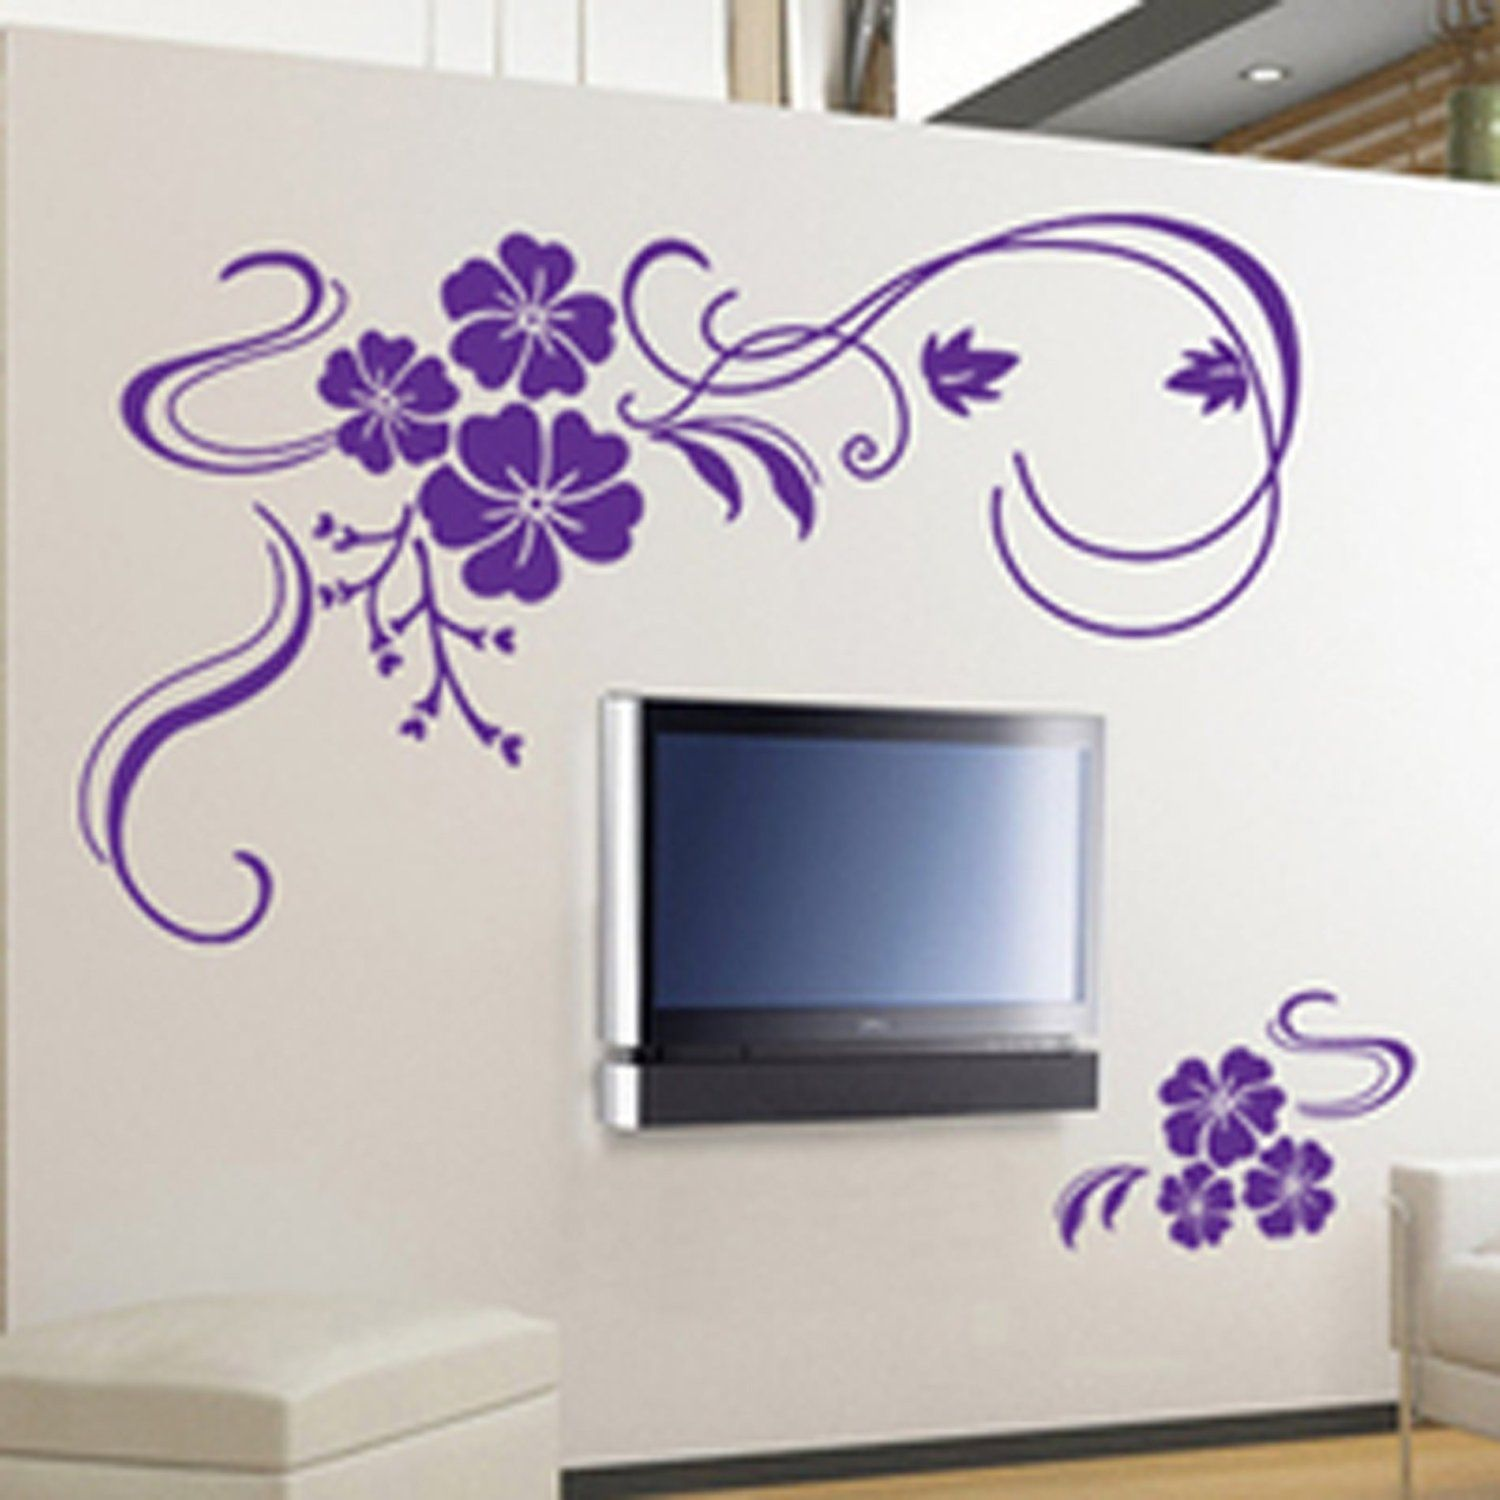 a984d52987 Amazon.com - Butterfly Vine Flower Wall Art Stickers, Decals - Purple - Wall  Decor Stickers